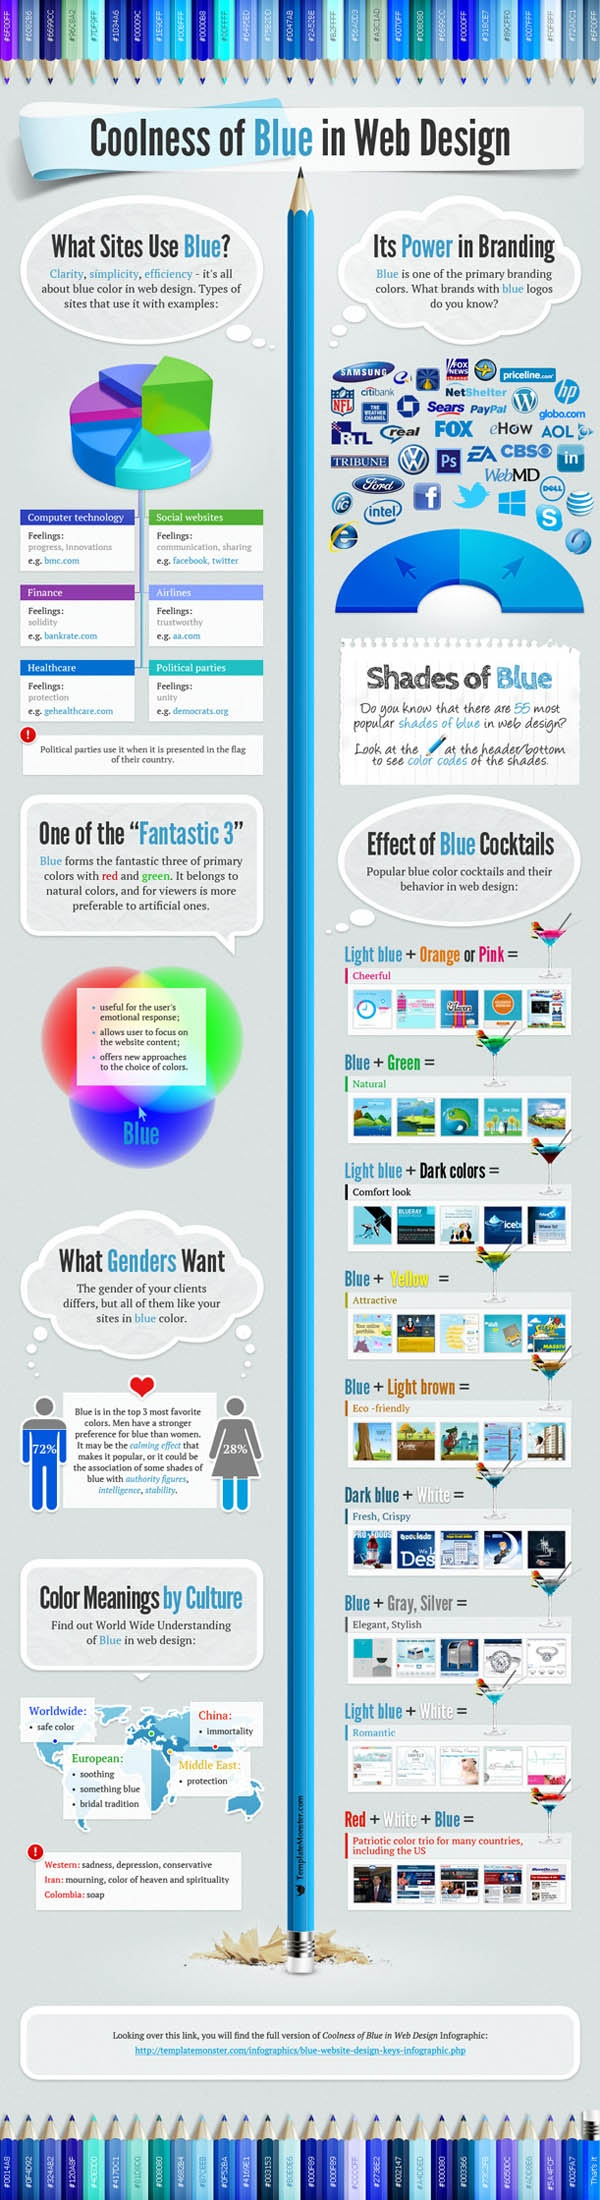 The importance of blue in web design